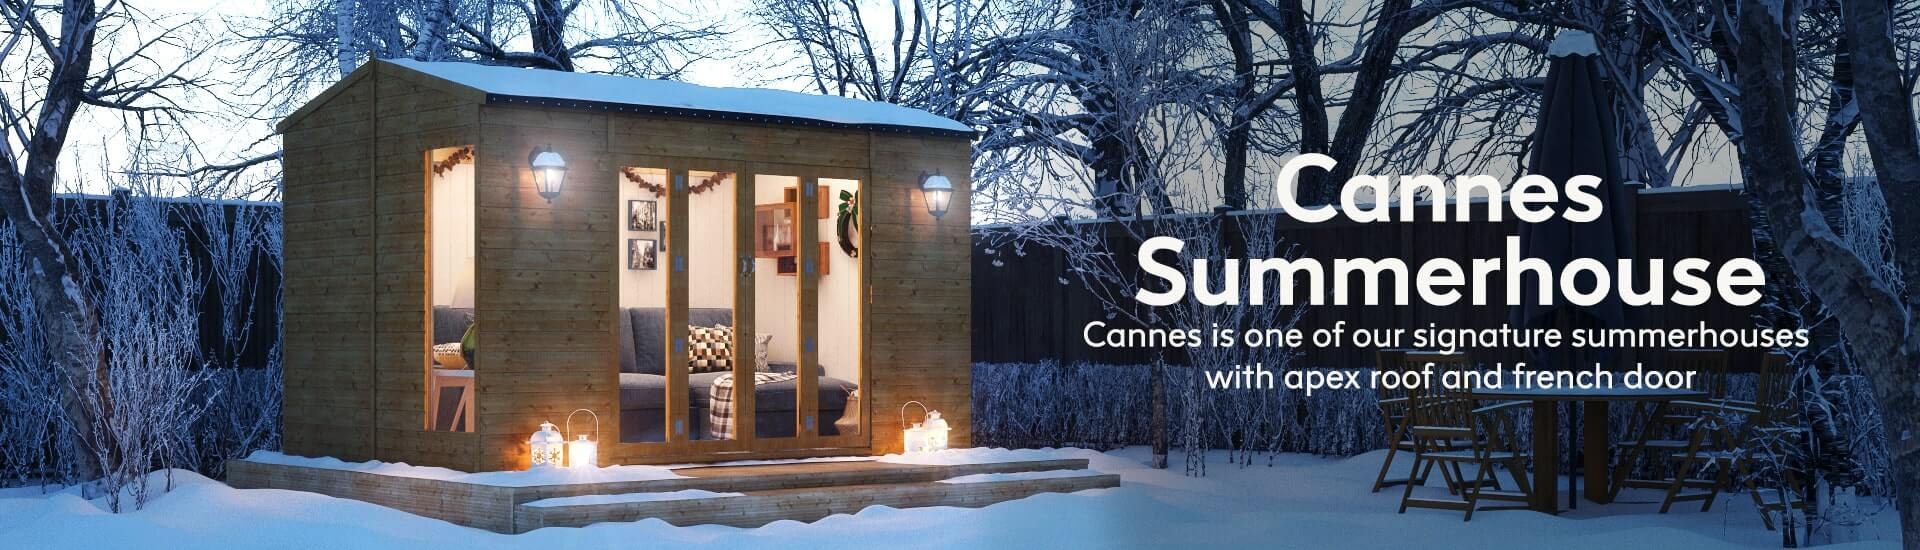 Cannes summerhouse